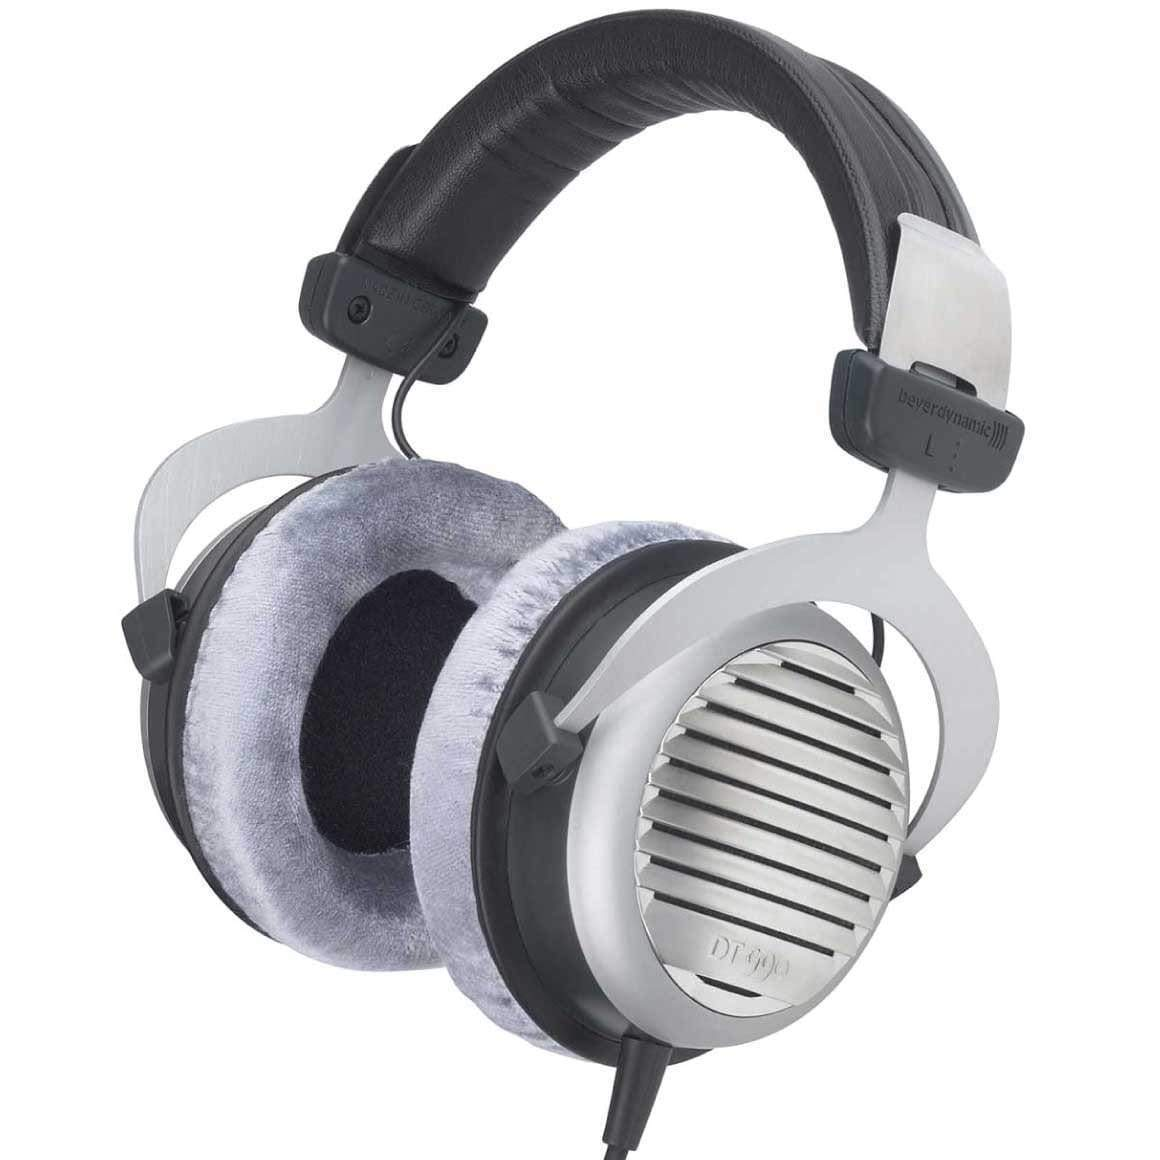 Beyerdynamic - DT 990 Editionvs competitors